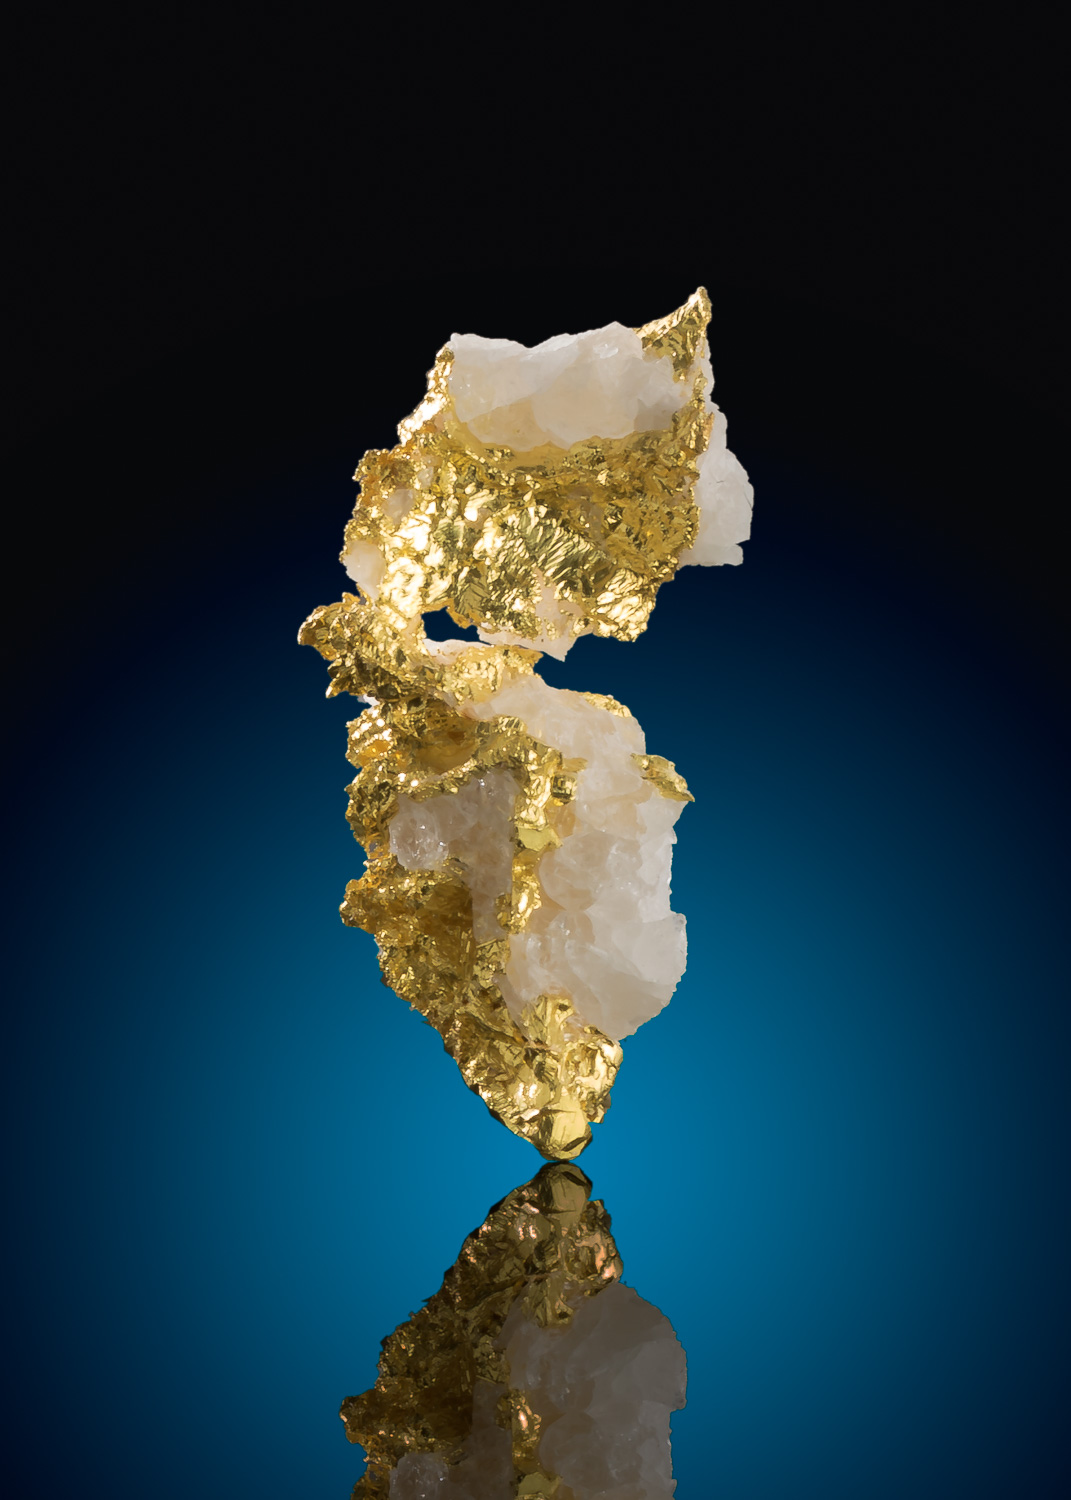 Sharp Yellow Crystalline Gold in Quartz - Mariposa County, CA